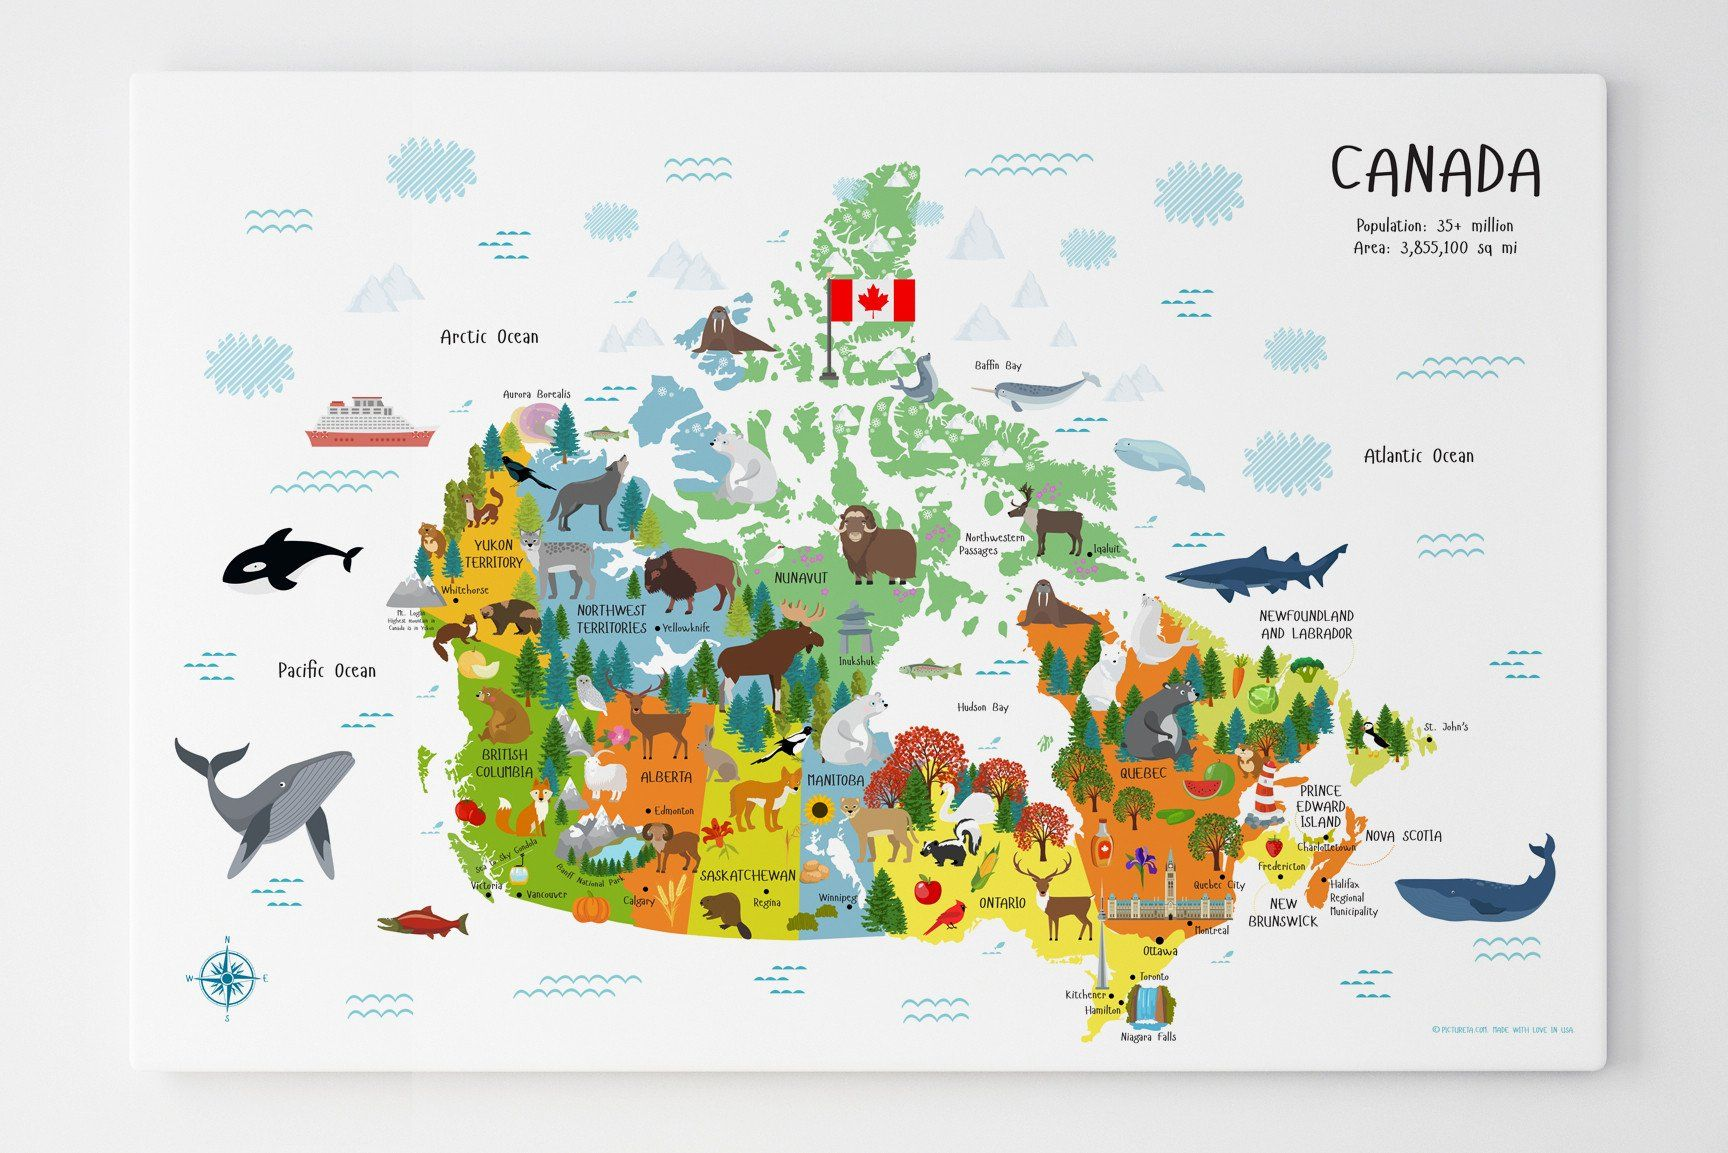 Canada Travel Map Canada Map | Map of Canada for Kids Canvas for Nursery of Playroom